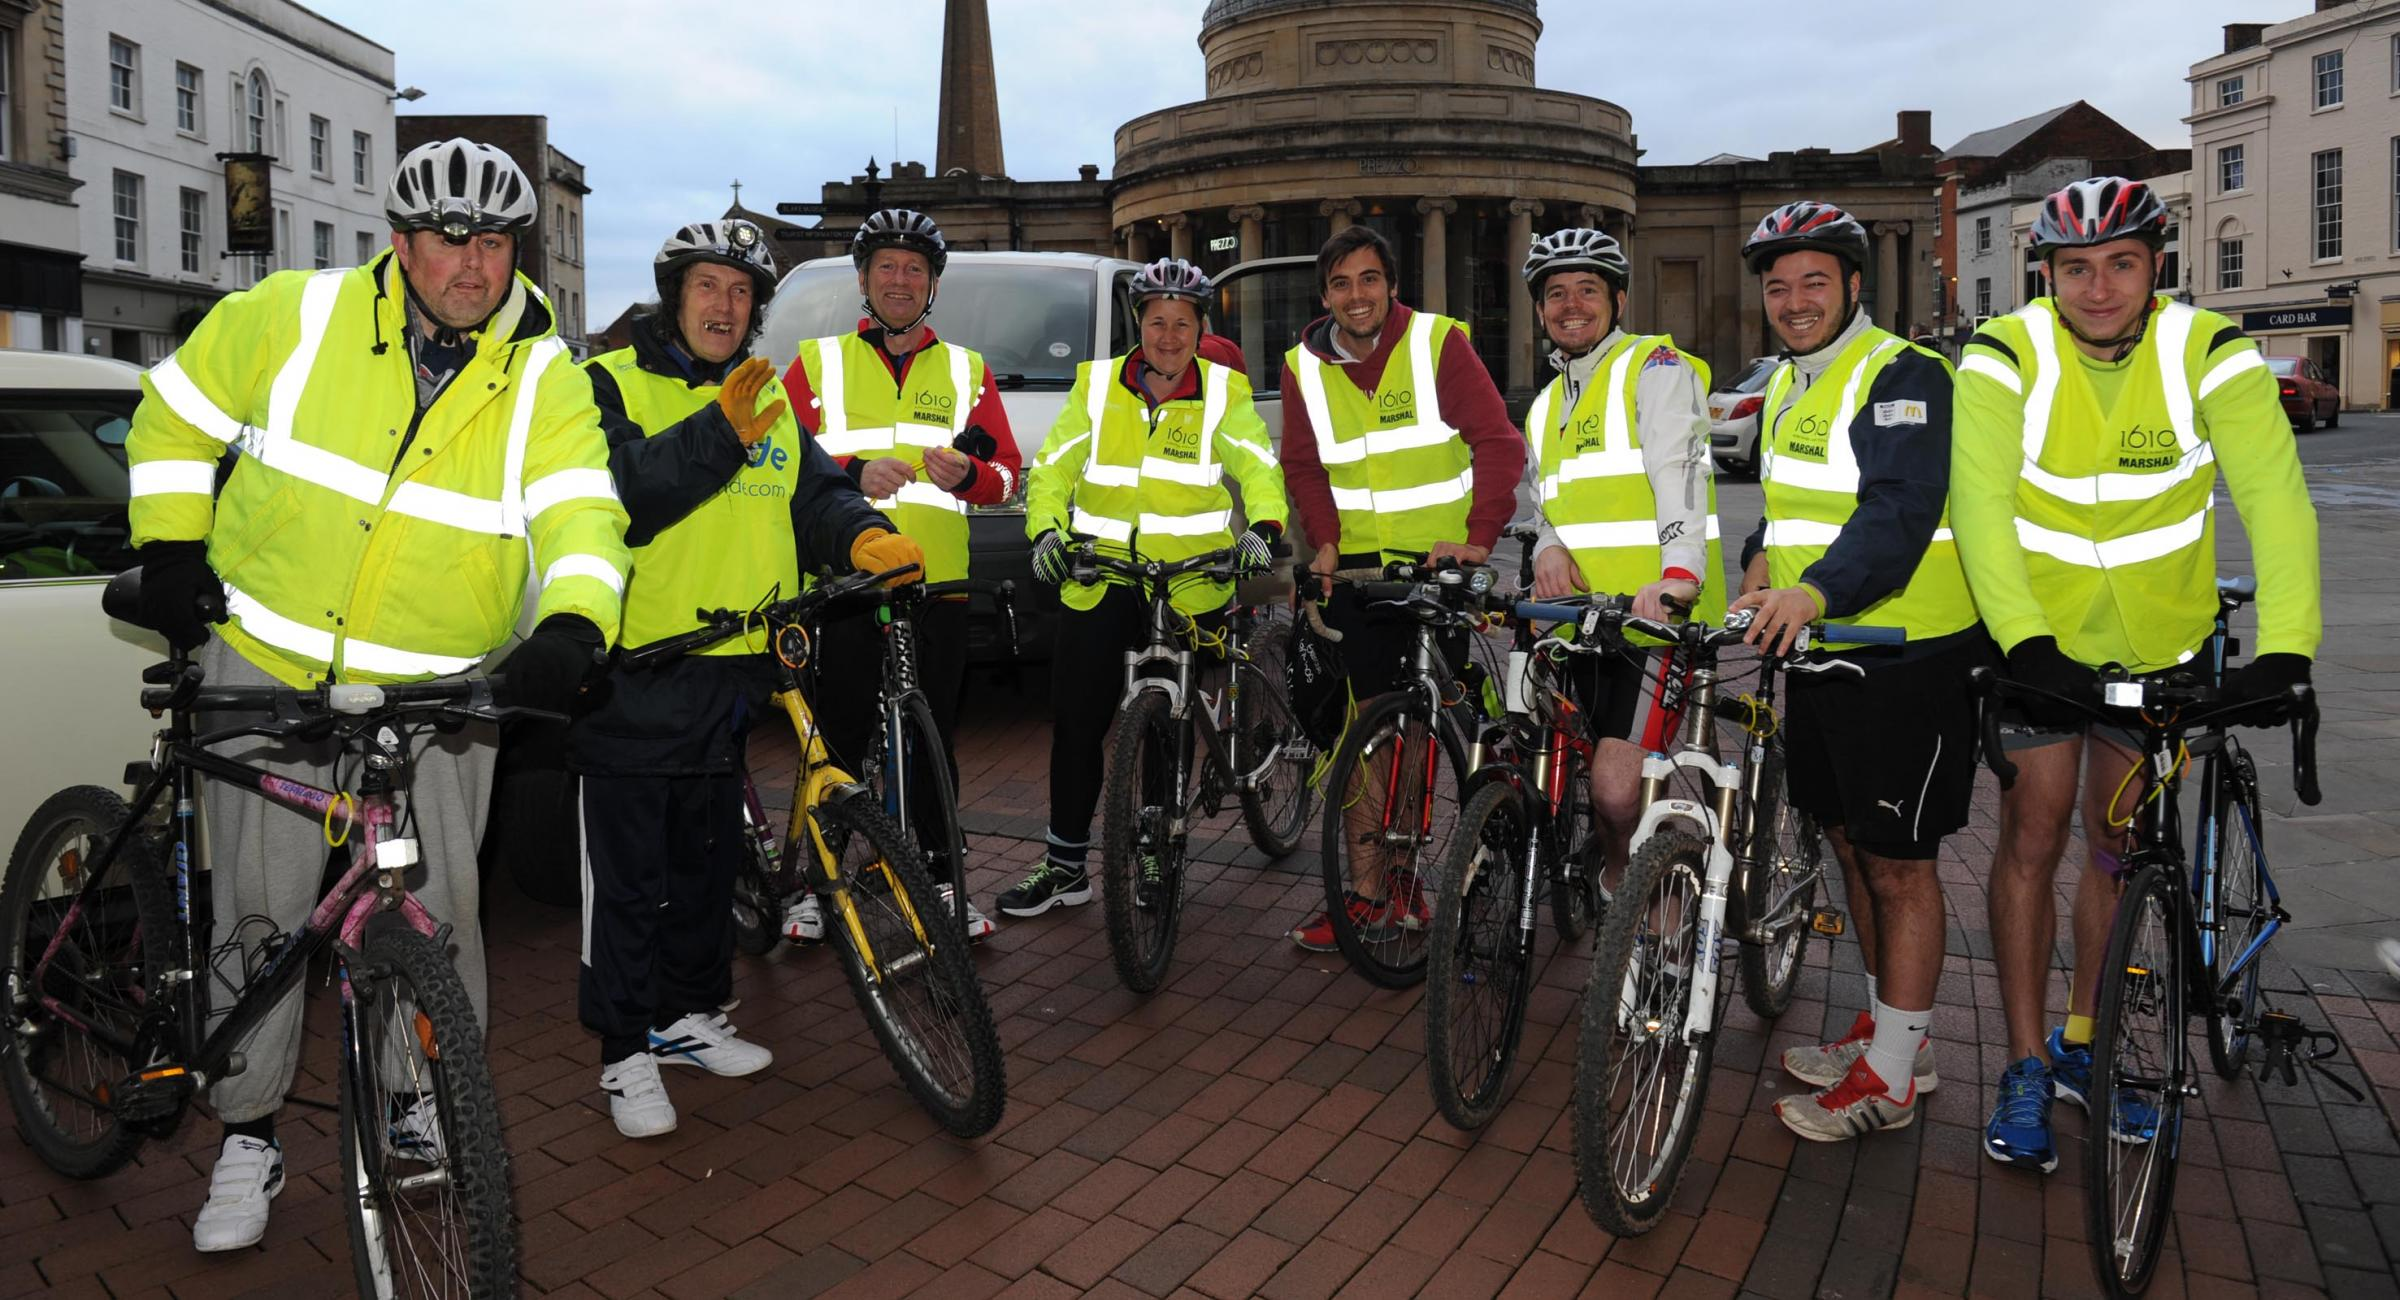 The cyclists ready for the Neon Bike Ride in Bridgwater